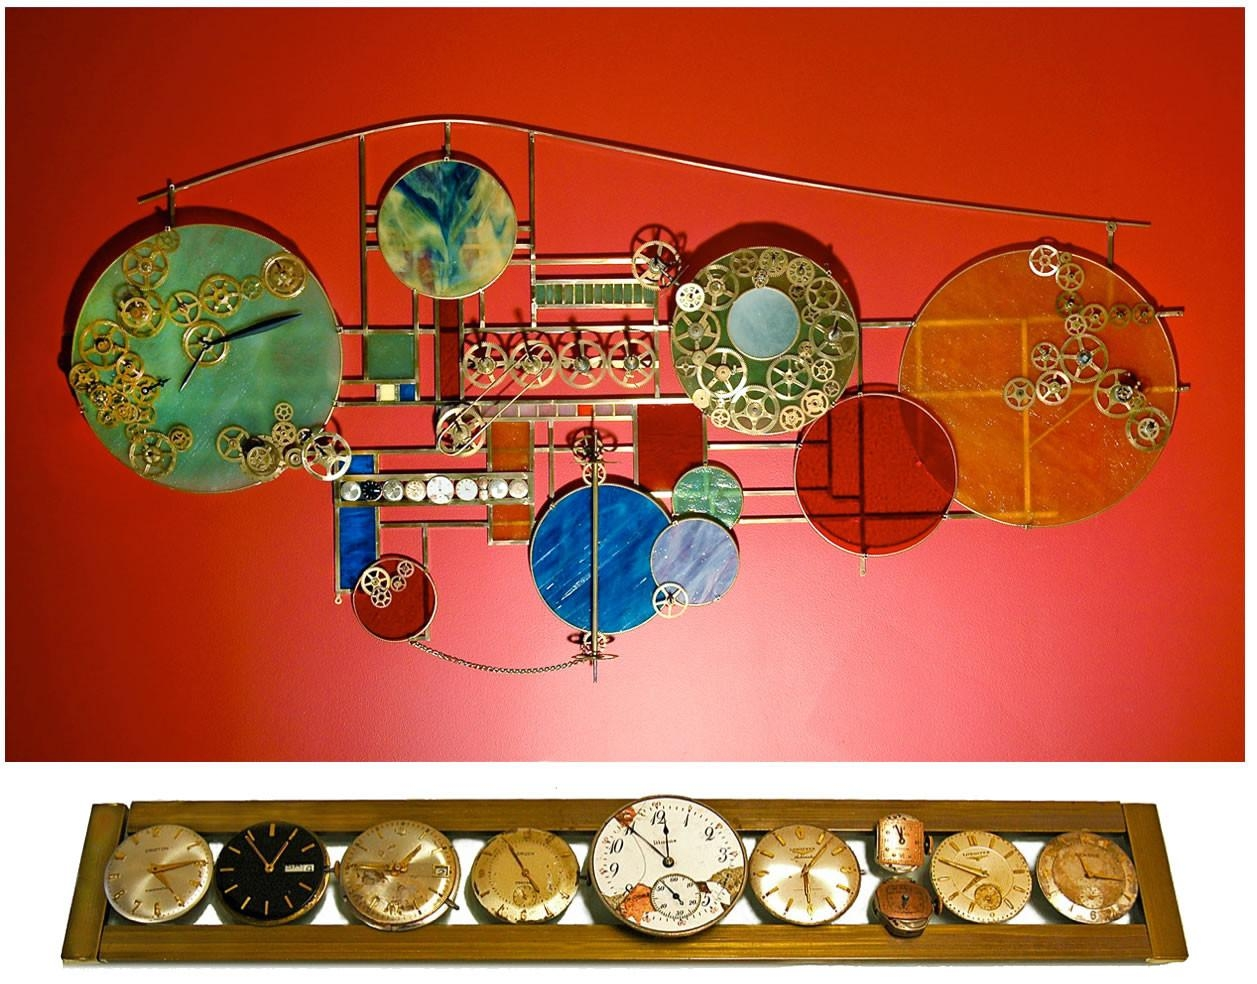 Kinetic Sculpture Artist – Andrea Davide | Second Time | A Wall Throughout Kinetic Wall Art (Image 6 of 20)